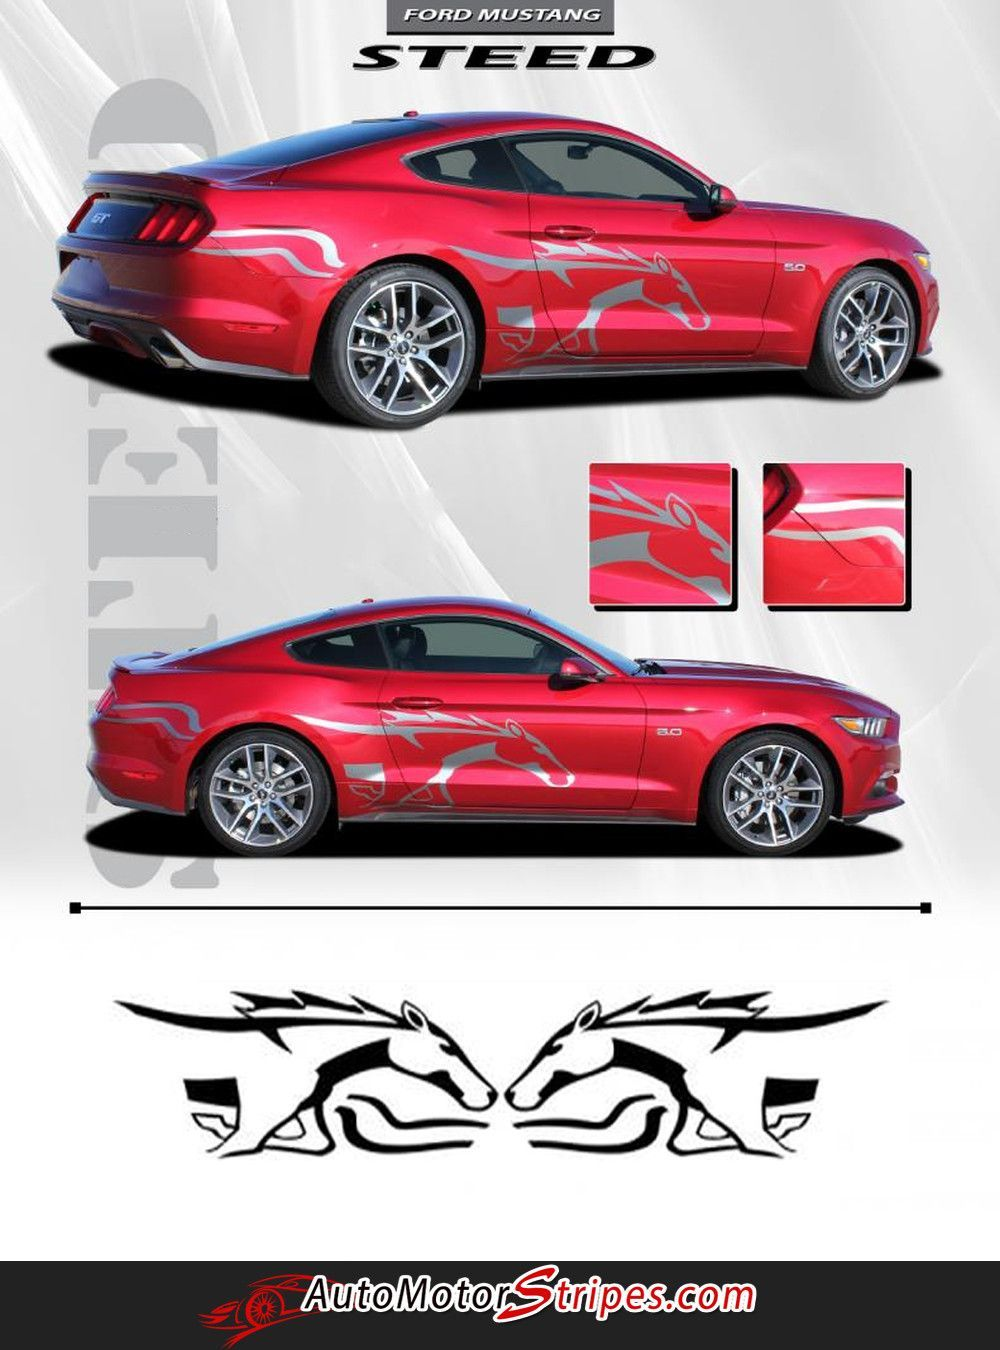 2017 2016 Ford Mustang Pony Steed Horse Outline Side Stripes Vinyl Graphics 3m Decals